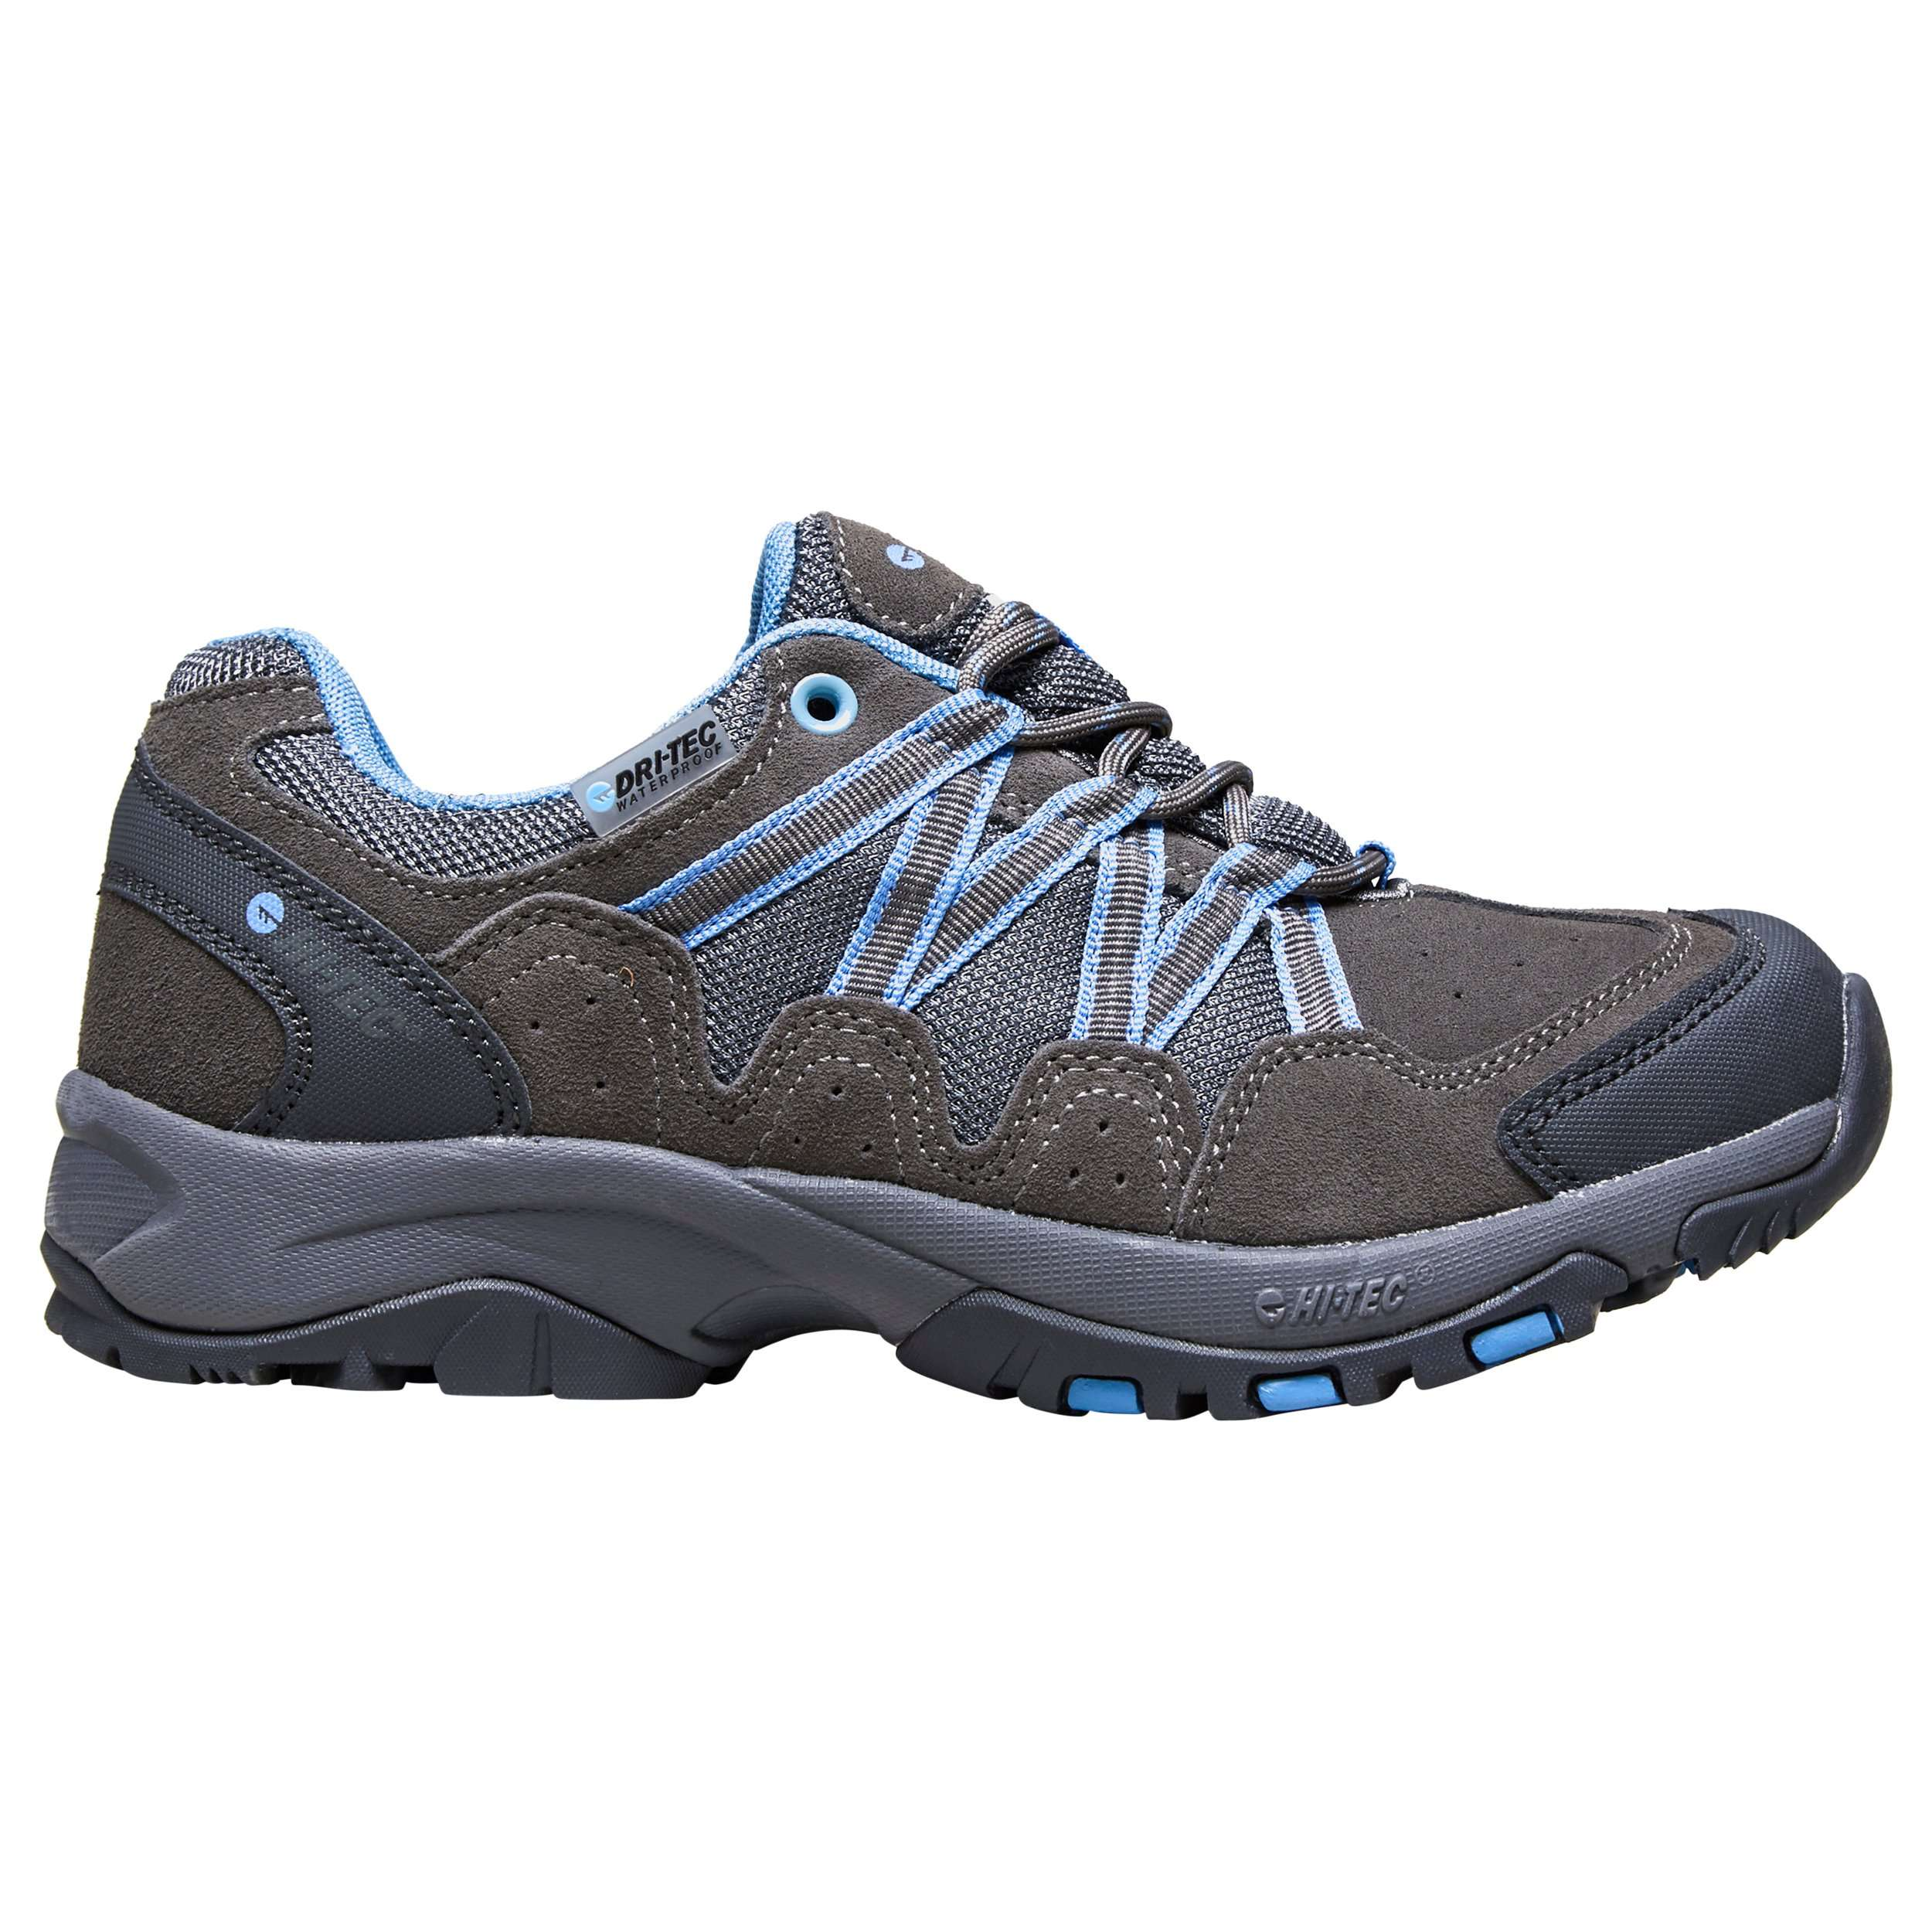 HI TEC Women's Florence Walking Shoe